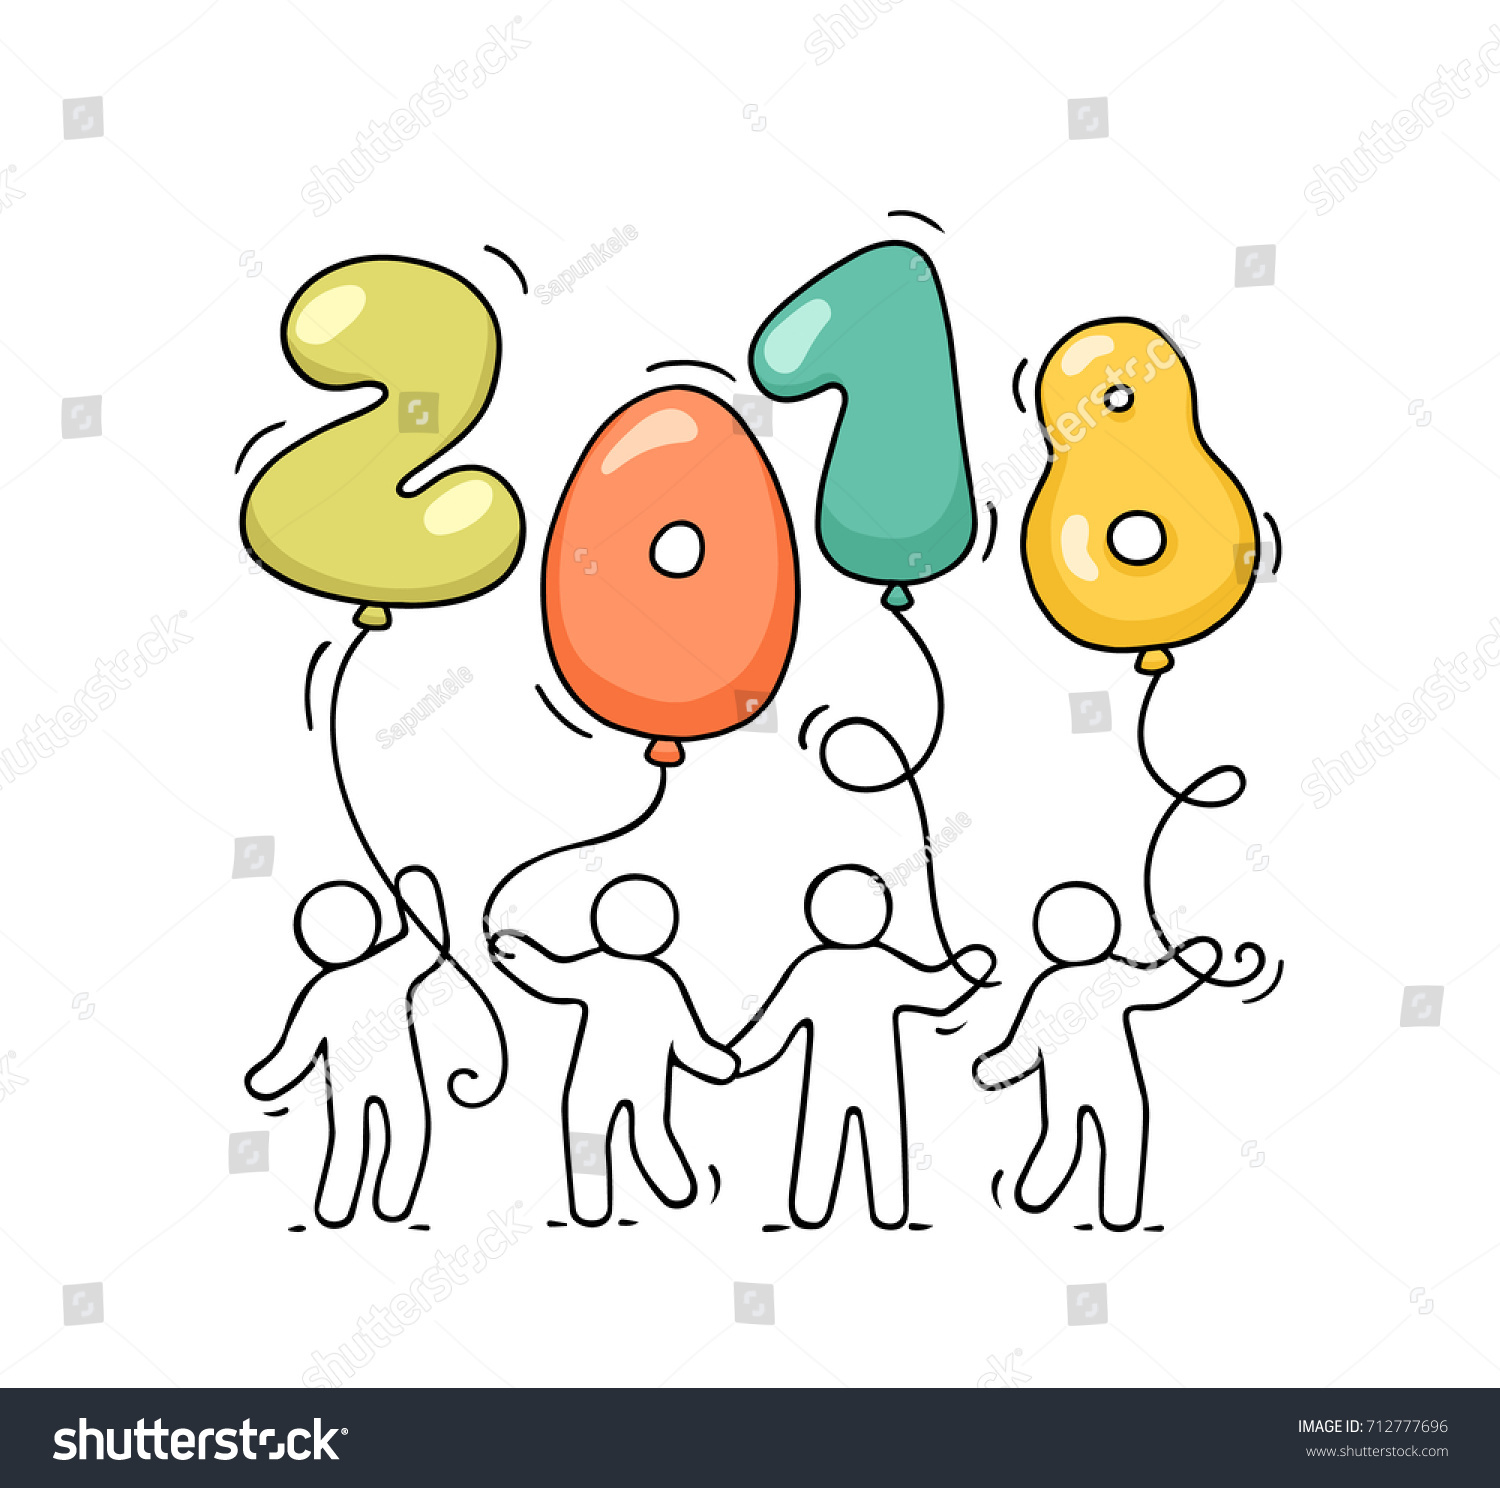 2018 happy new year background cartoon doodle illustration with little people holding balloons hand